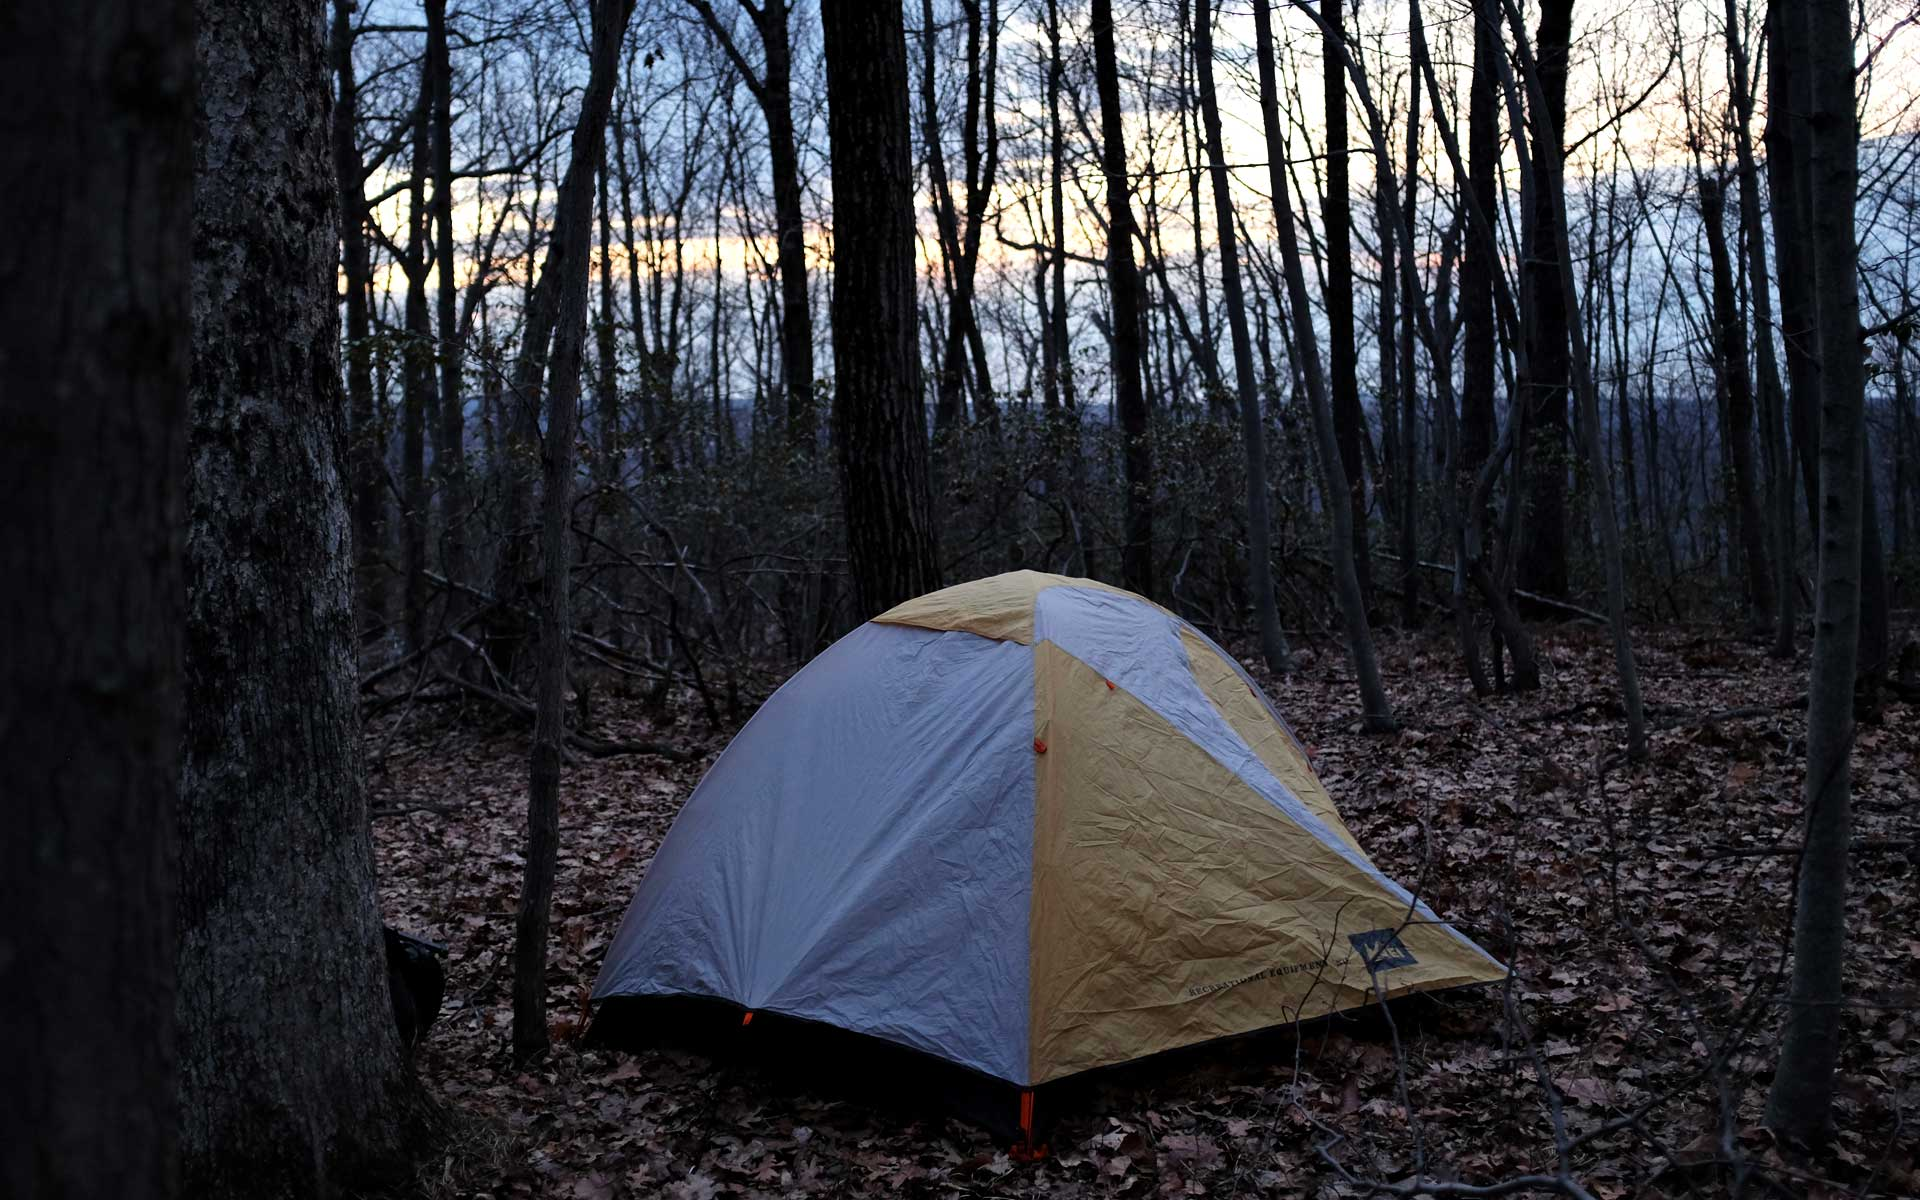 Photograph: the tent, set up in between some trees, on a bed of dry leaves at sunset.